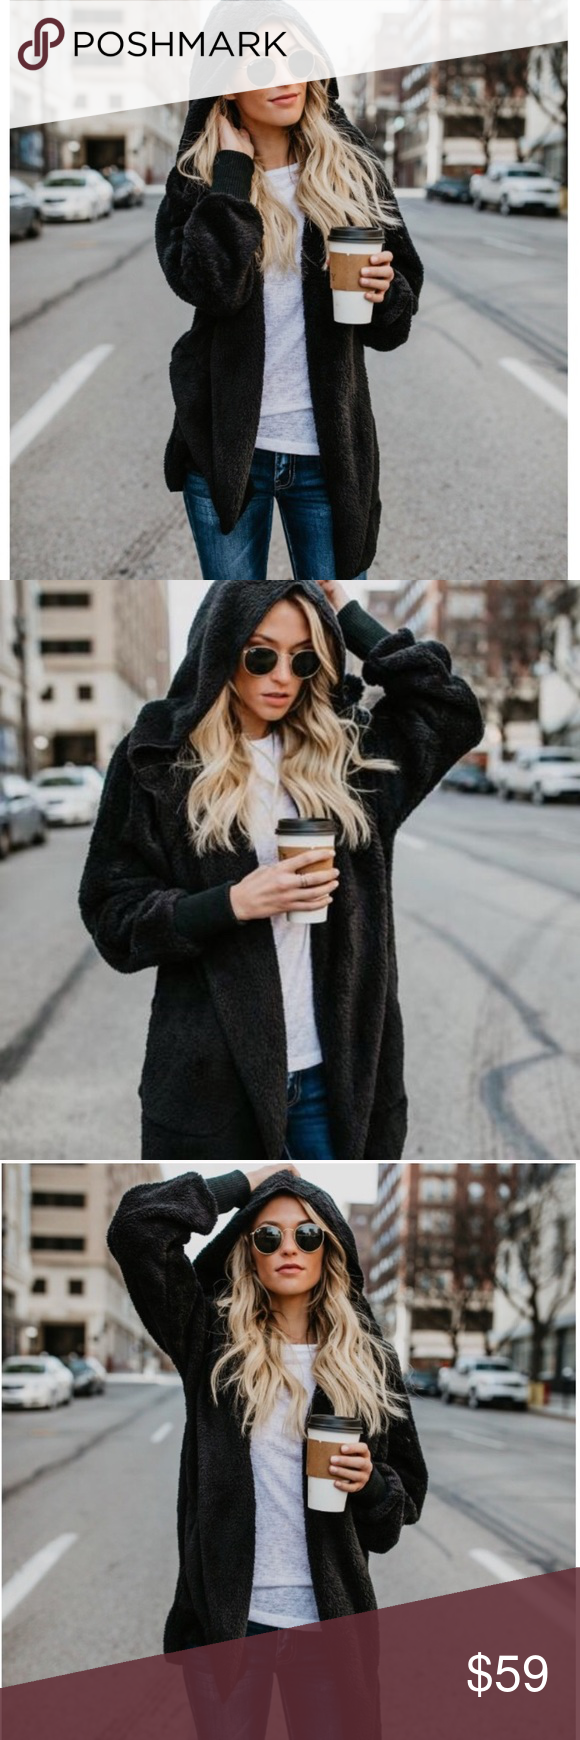 Paige Vegan Sherpa Fuzzy Black Jacket Softest jacket you will ever own. Vegan Sherpa feel to it.  35% Cotton 65% Polyester. Has pockets and hood. Jackets & Coats